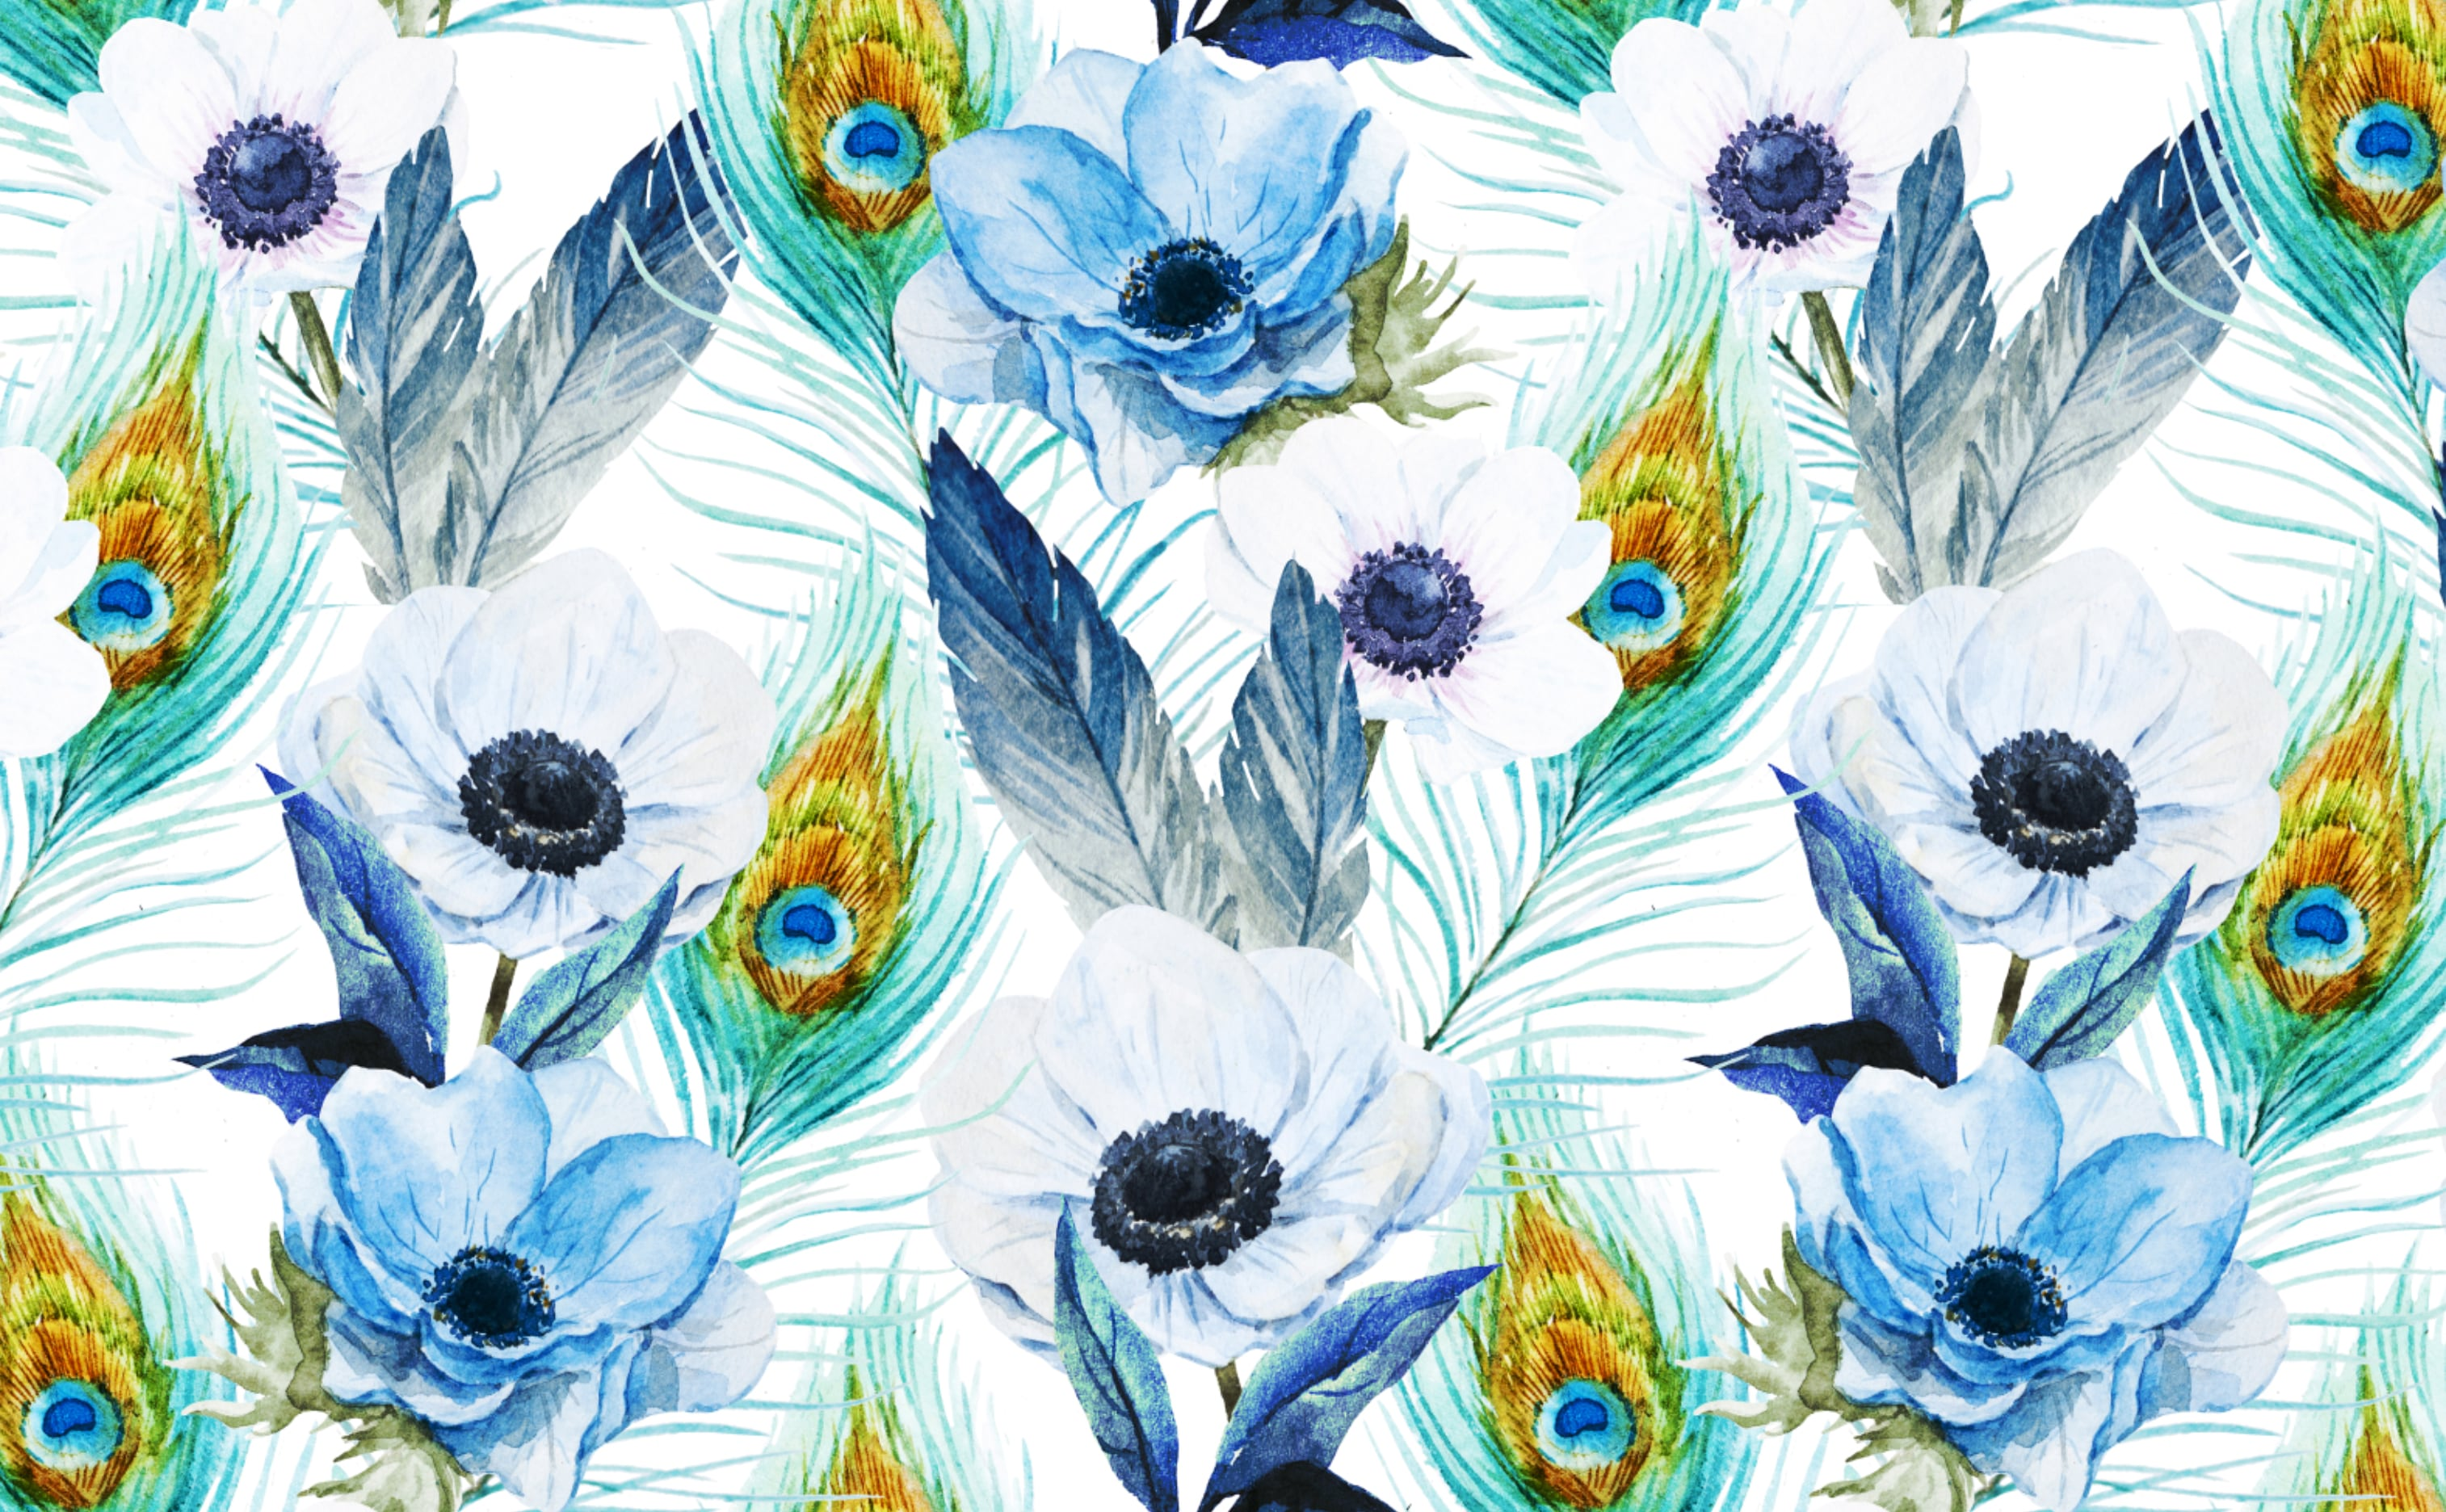 w0487 1s Poppies and Peacocks Removable Peel and Stick Wallpaper Repeating Pattern Sample 1 6c351a5e 1c7e 461a 90e3 8641d8d15658